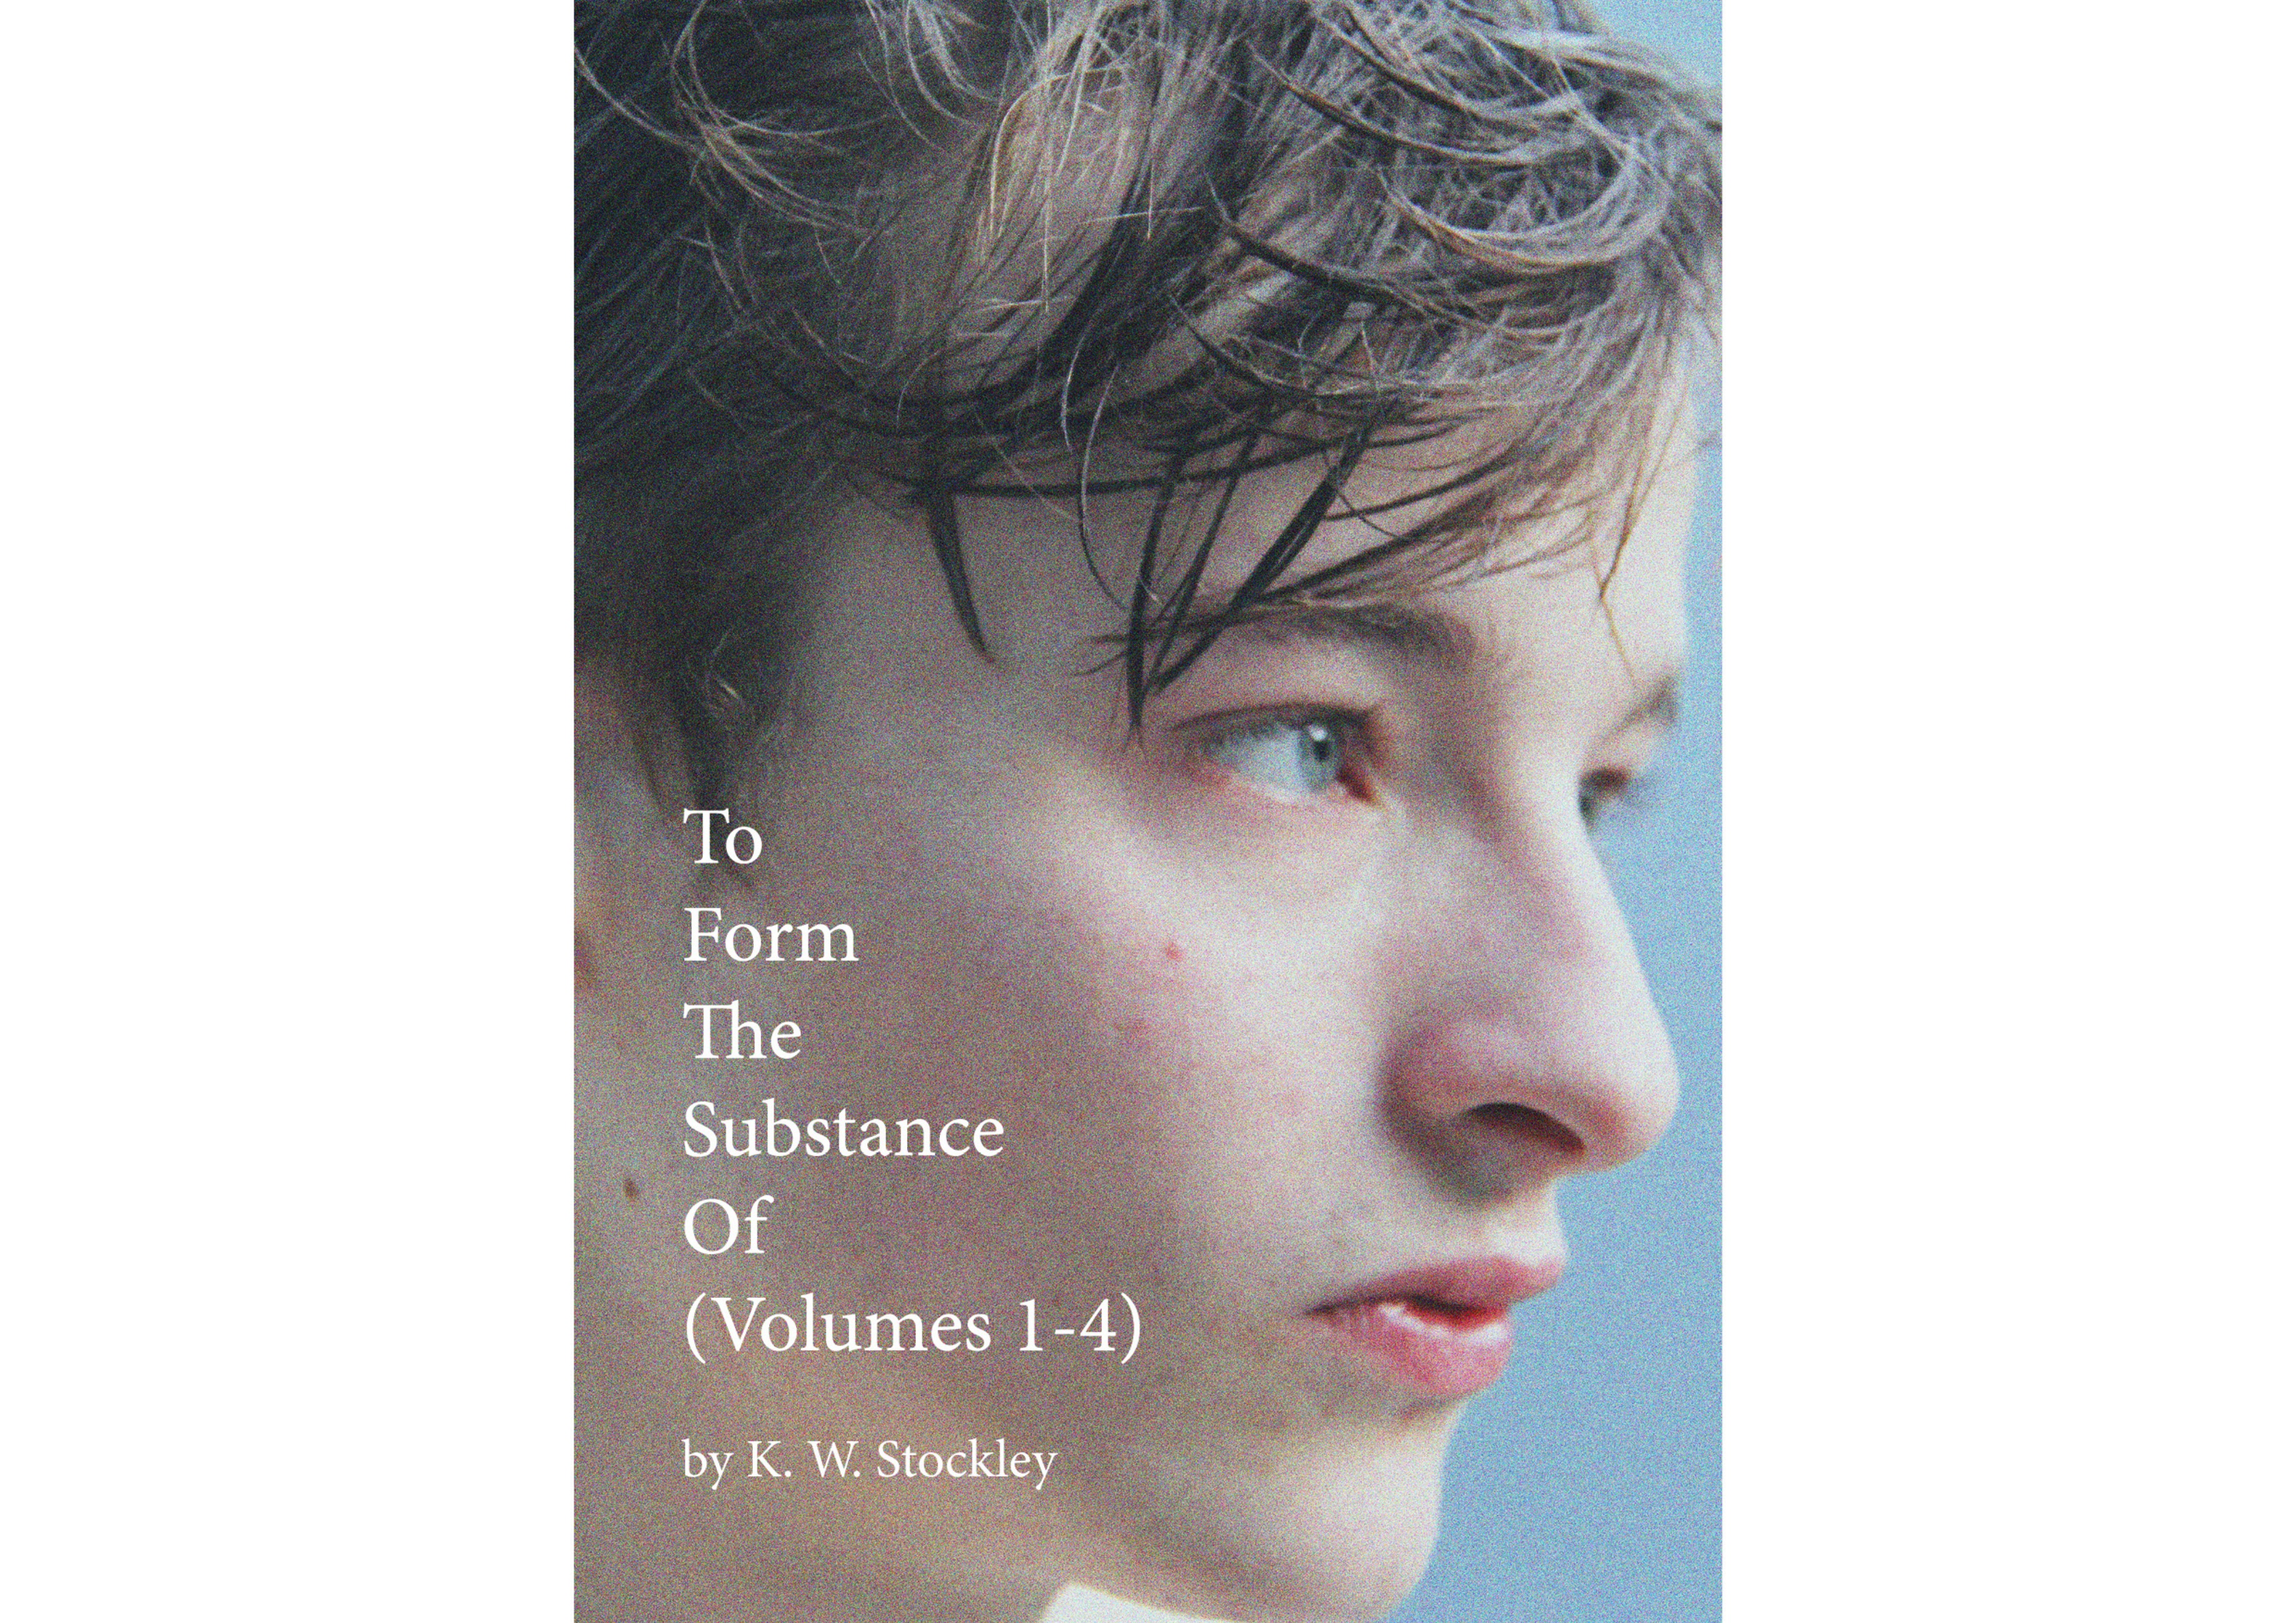 To Form The Substance Of Volumes 1-4 (Digital Edition)